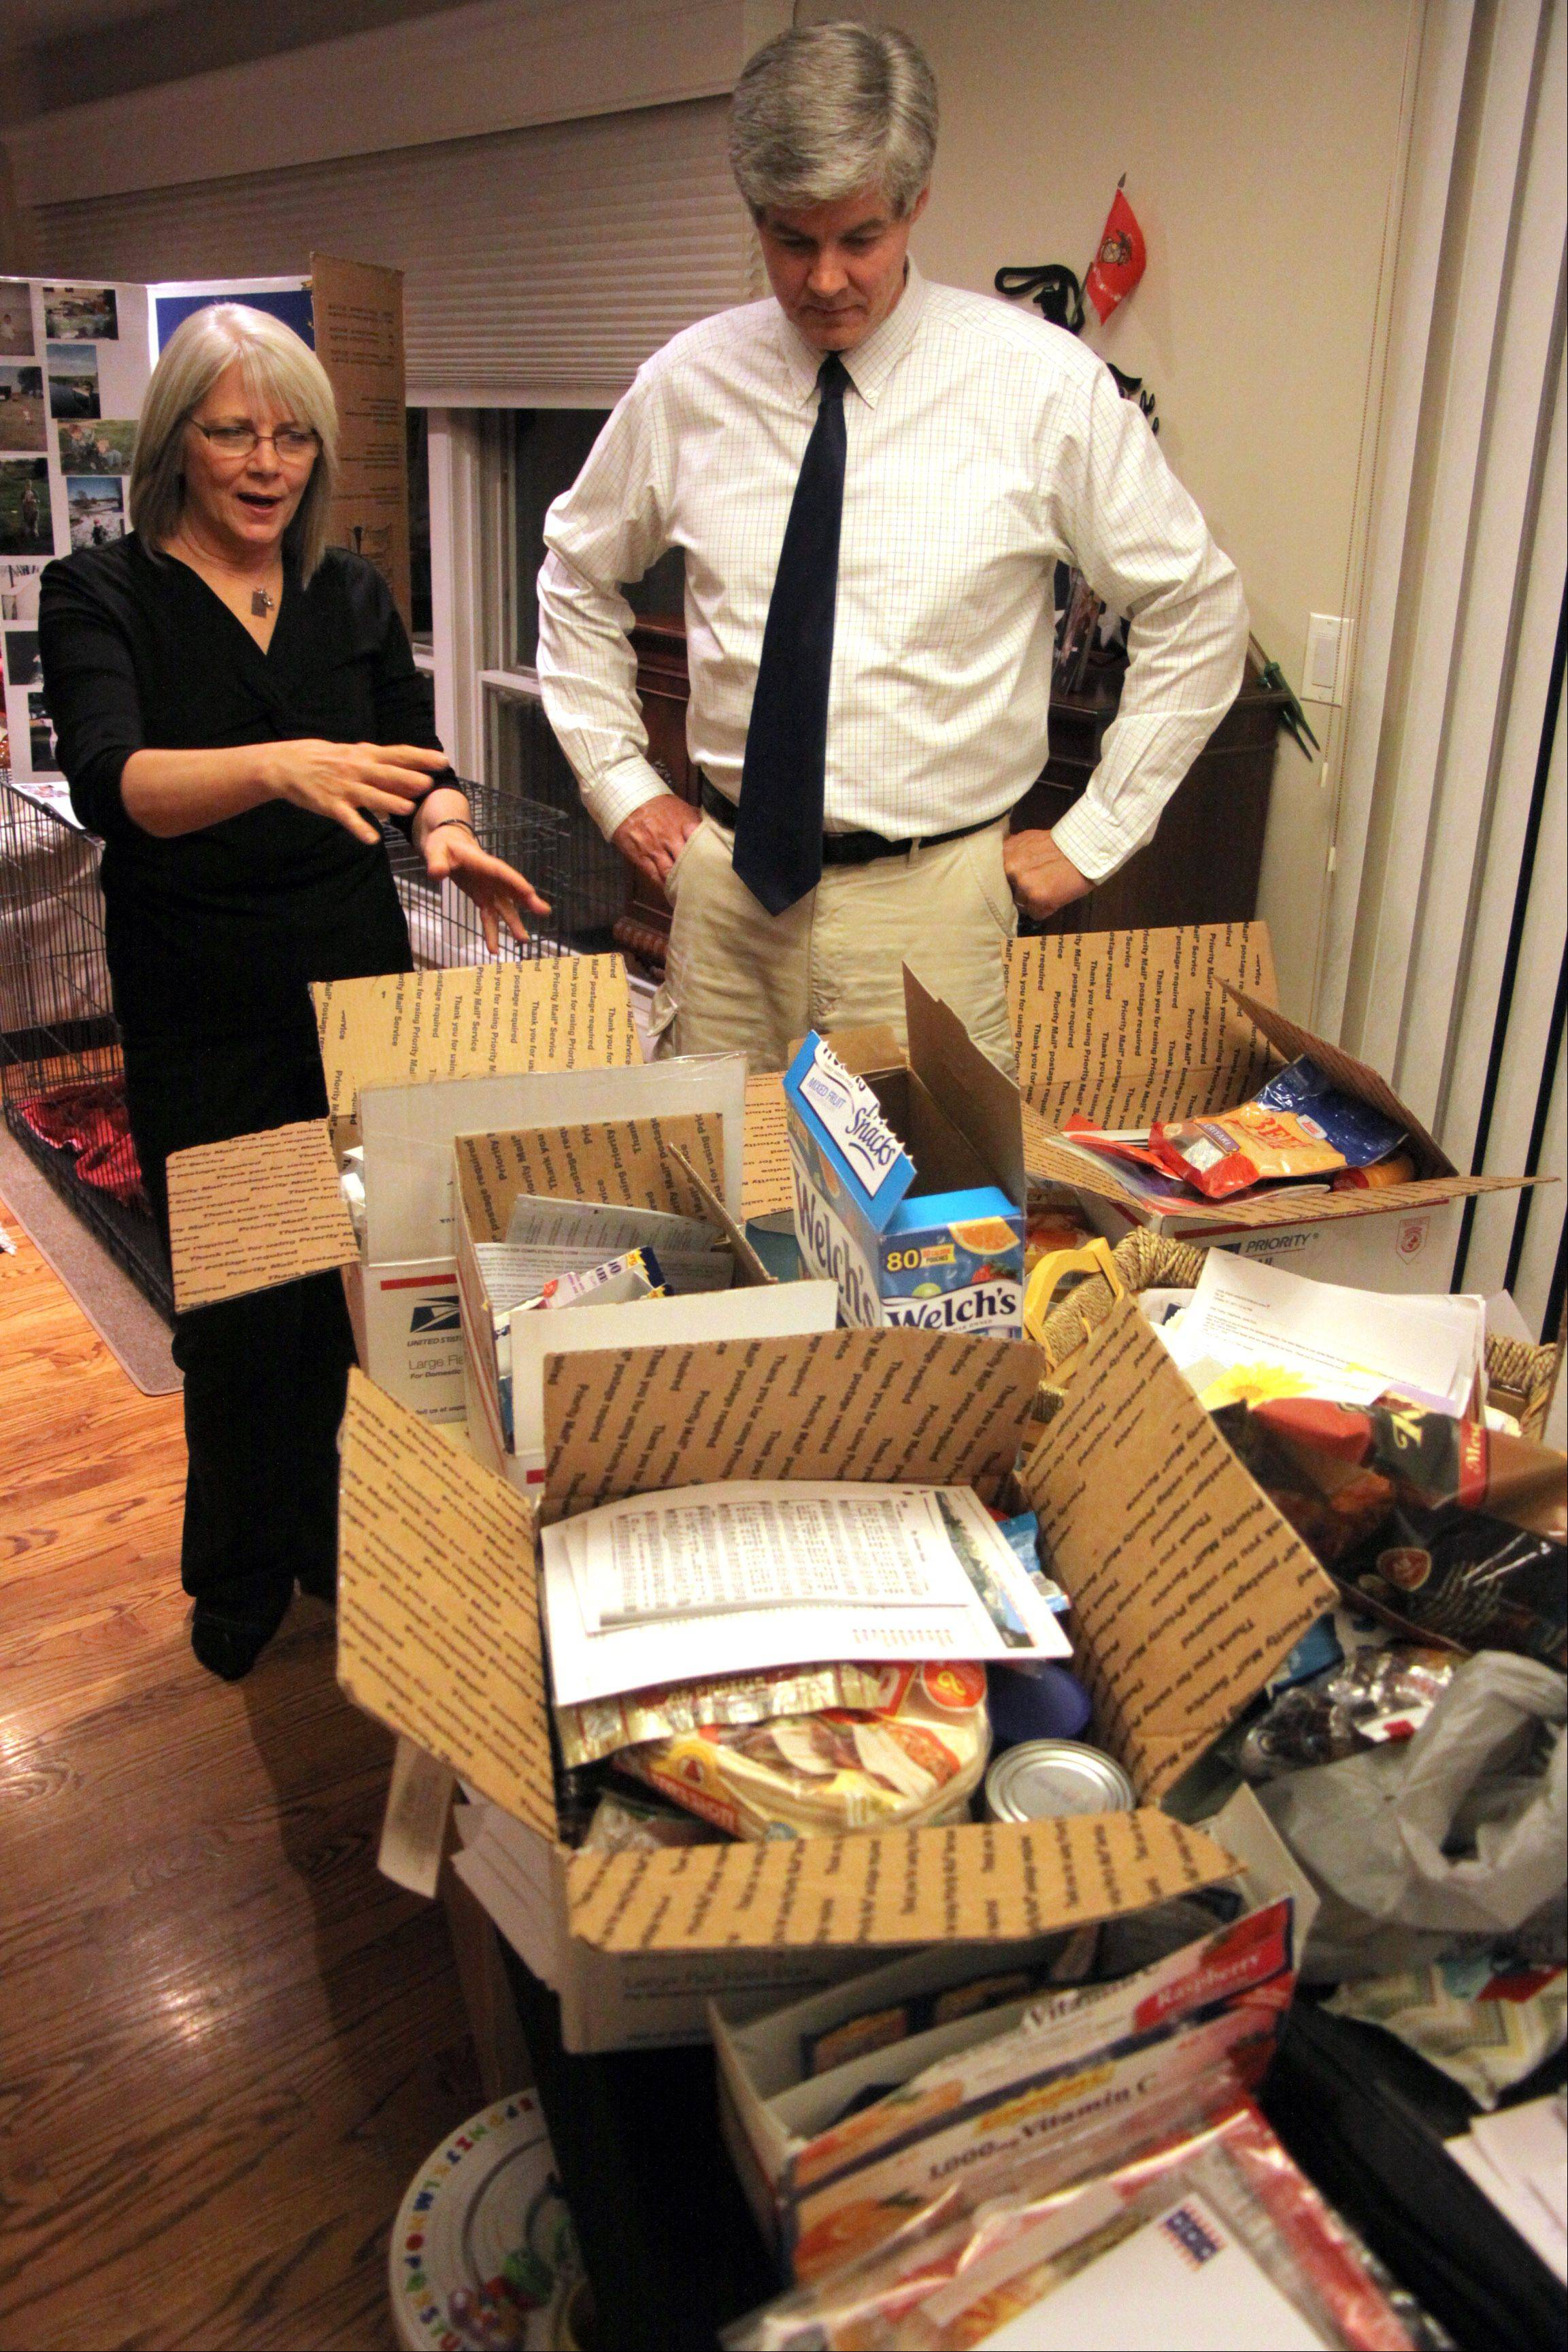 Robert and Linda Stack speak in their Arlington Heights home about care packages they are preparing for troops in Afghanistan. The Stacks lost their son, Marine Lance Cpl. James Stack, in the war in Afghanistan on Nov. 10, 2010.